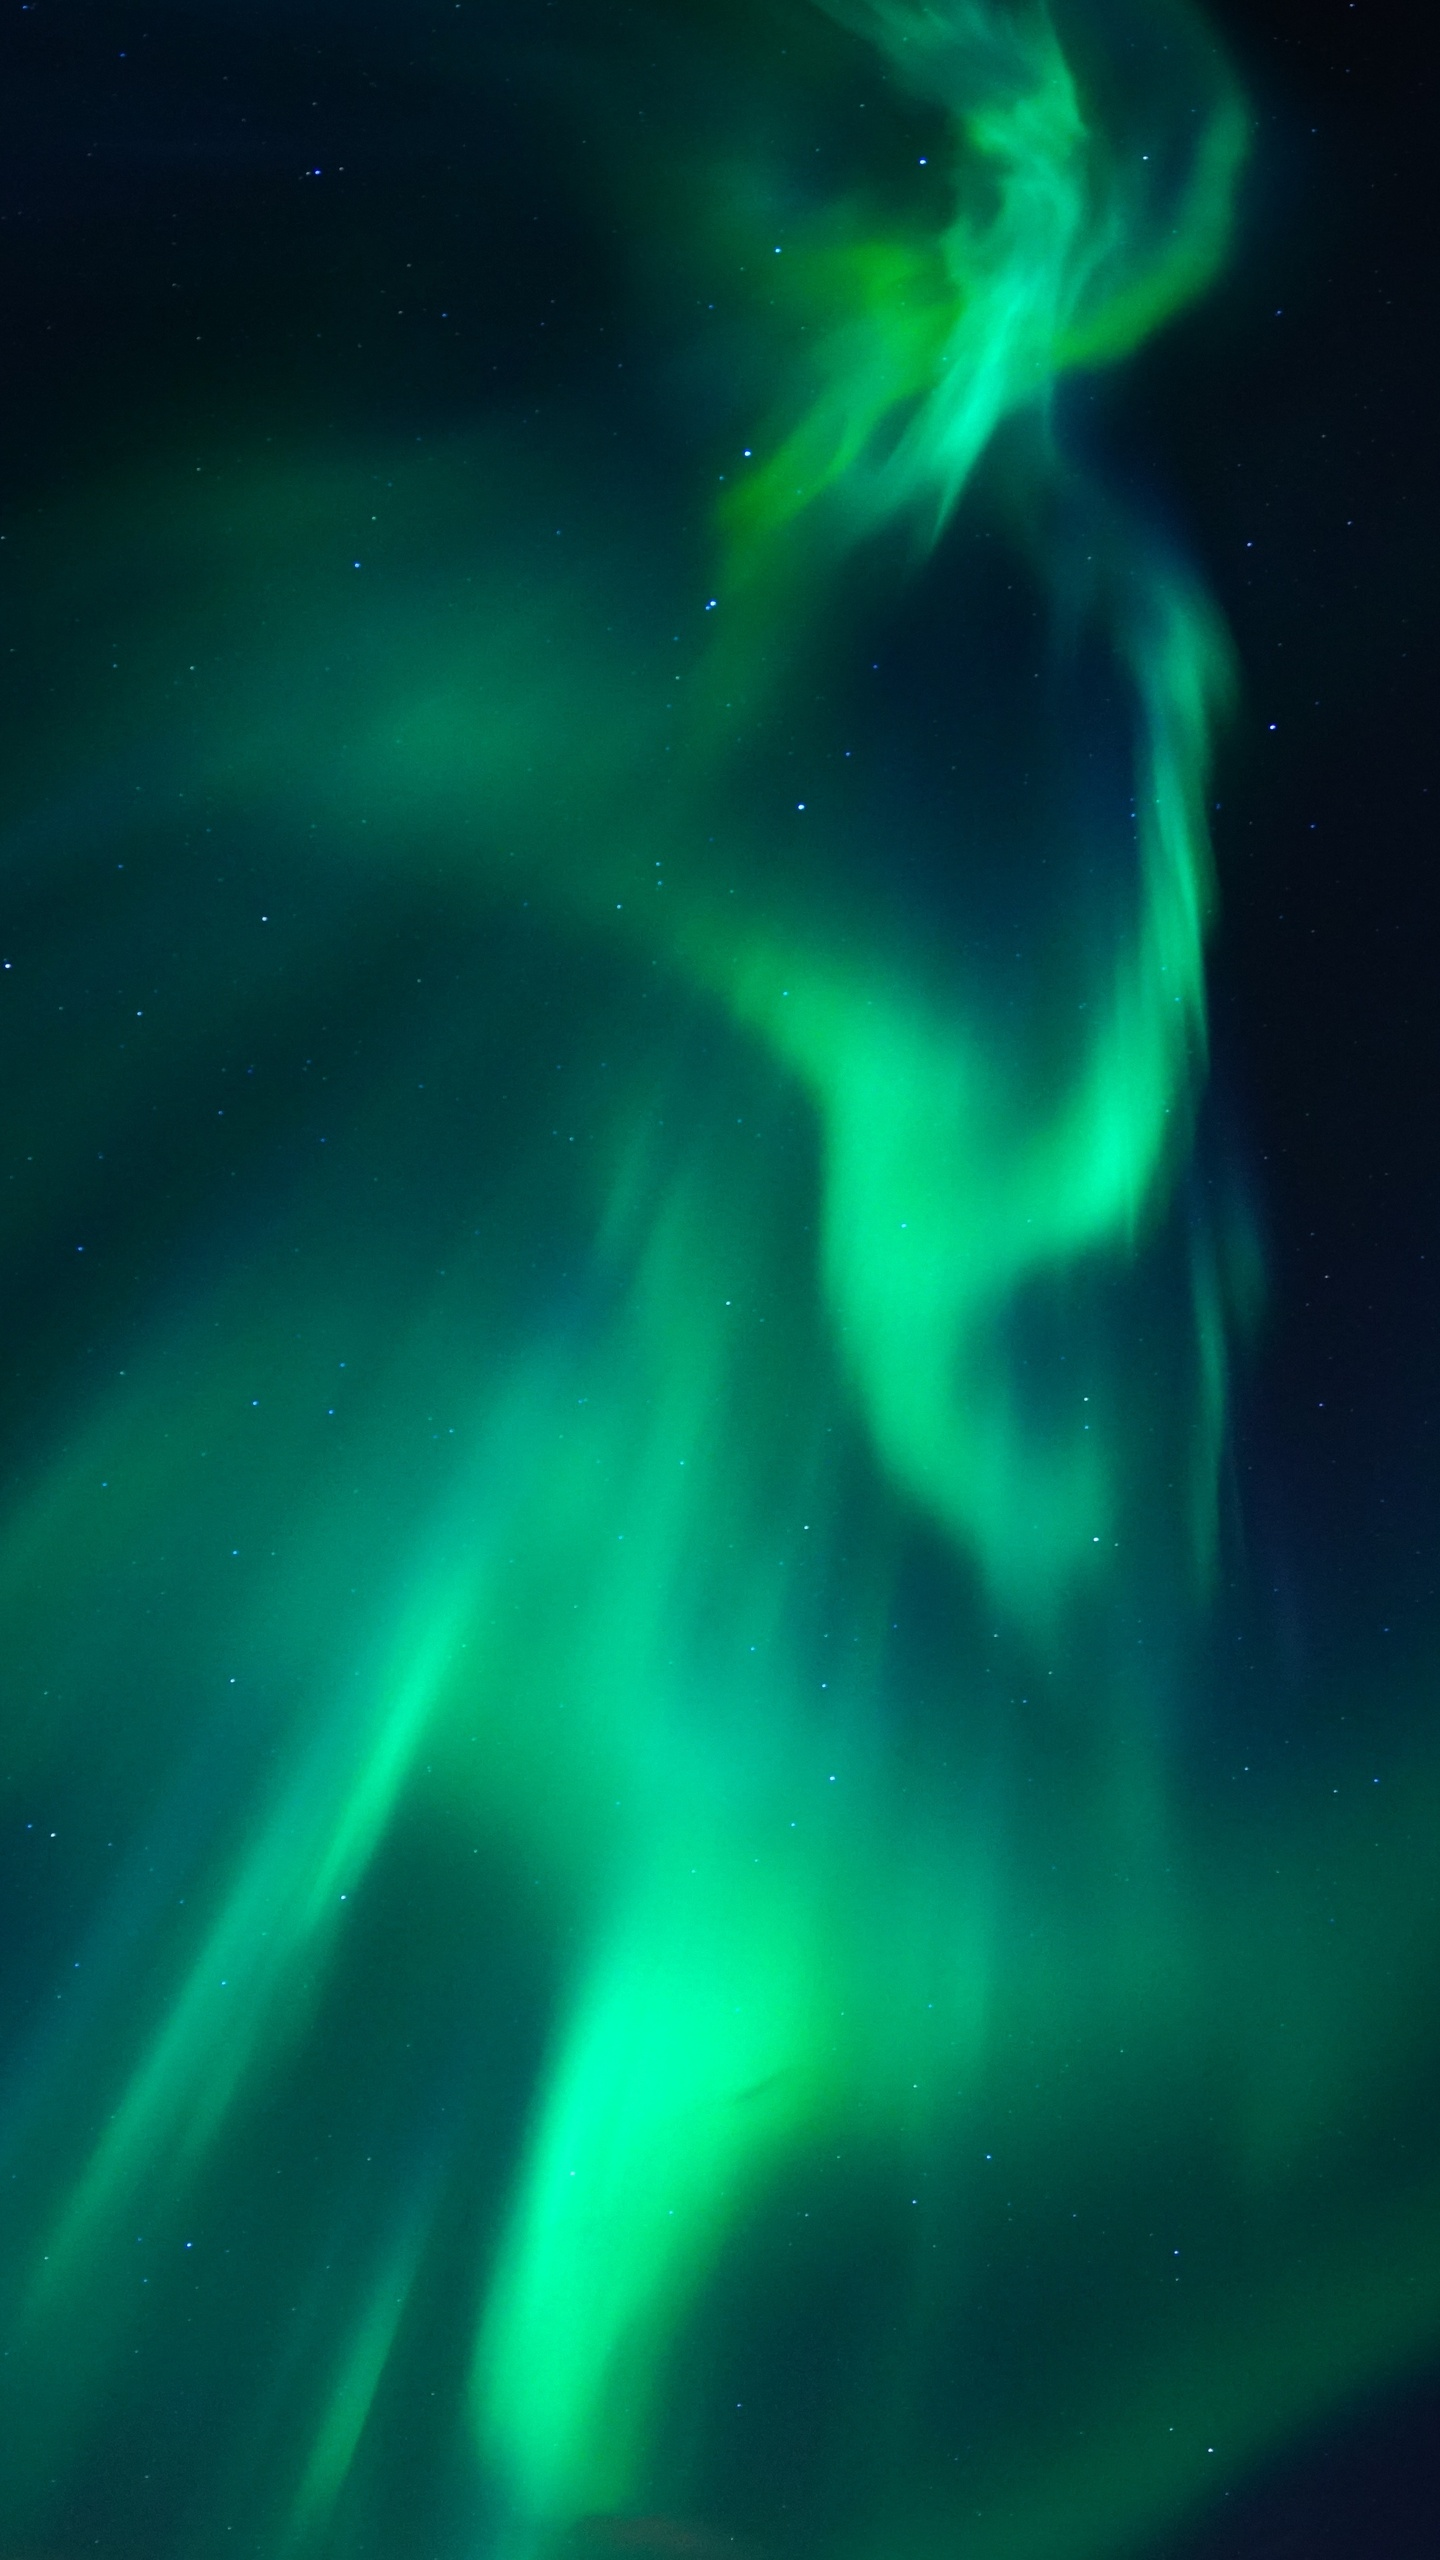 8k-northern-lights-aurora-c0.jpg